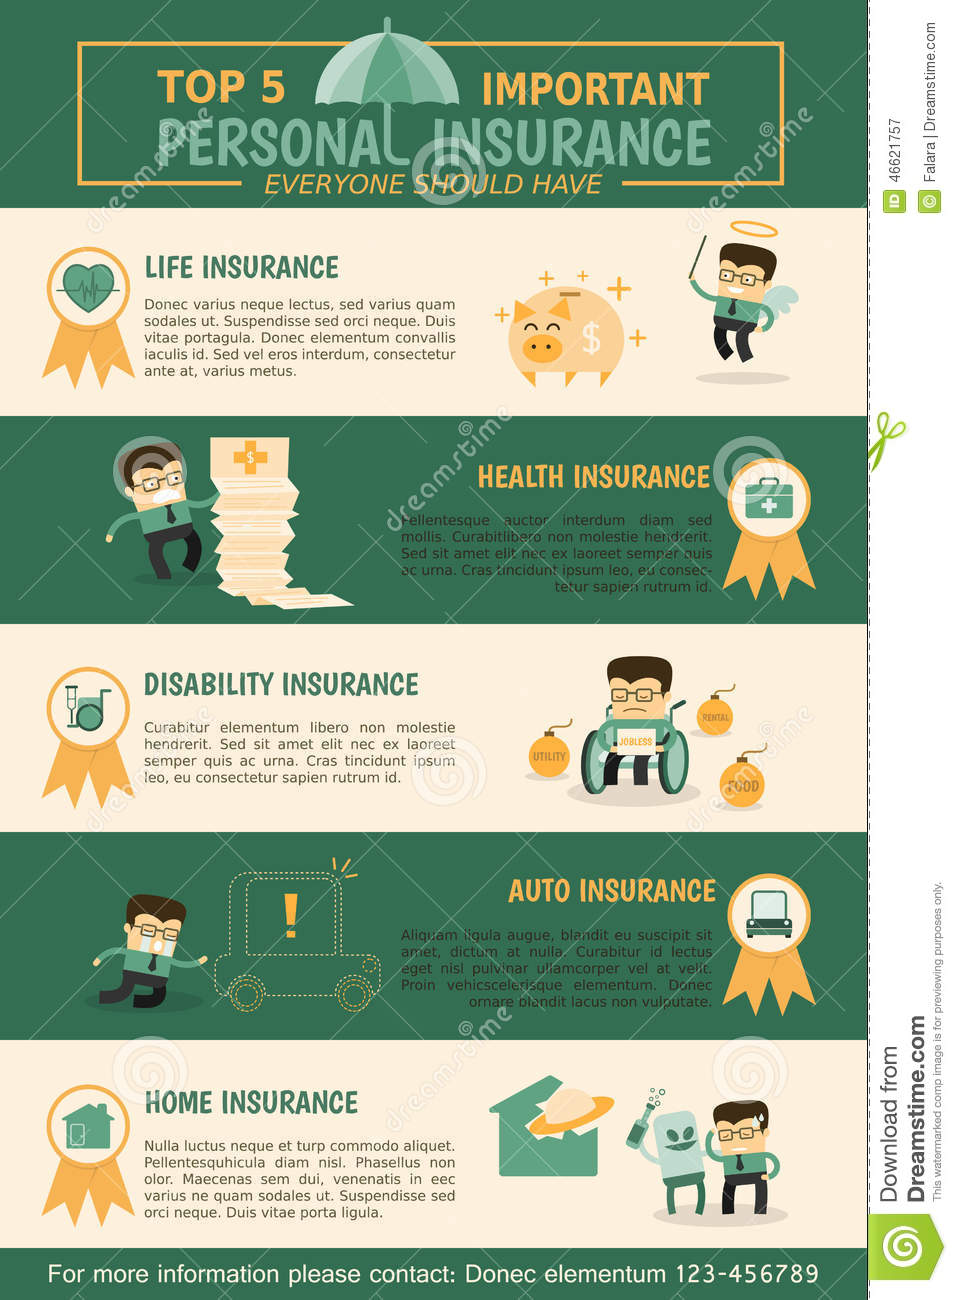 Top 5 most important personal insurance